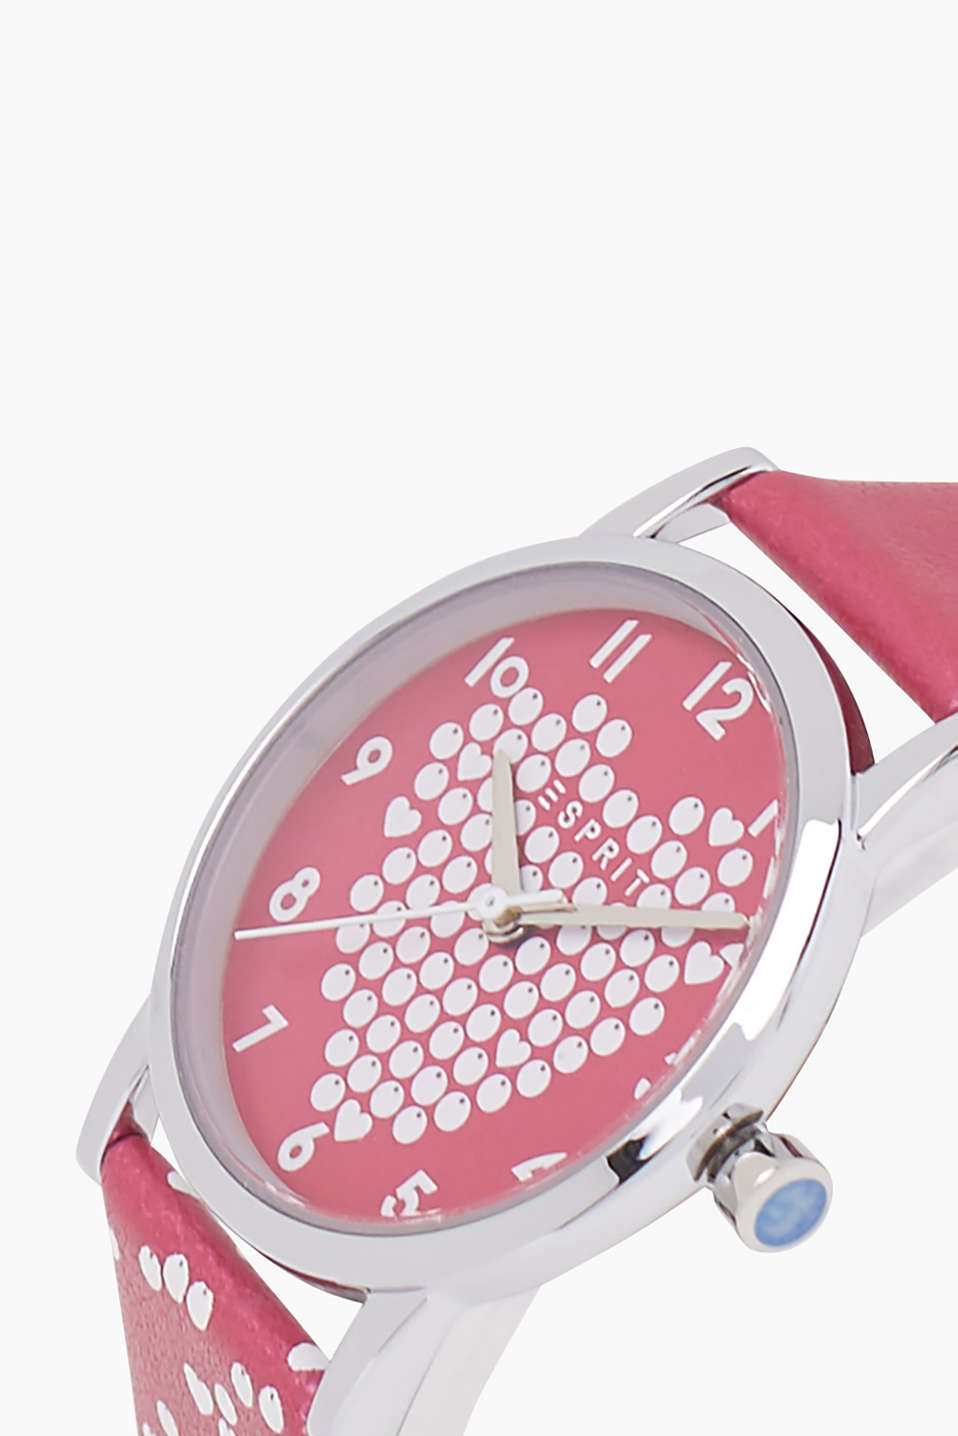 Kids watch with a heart design